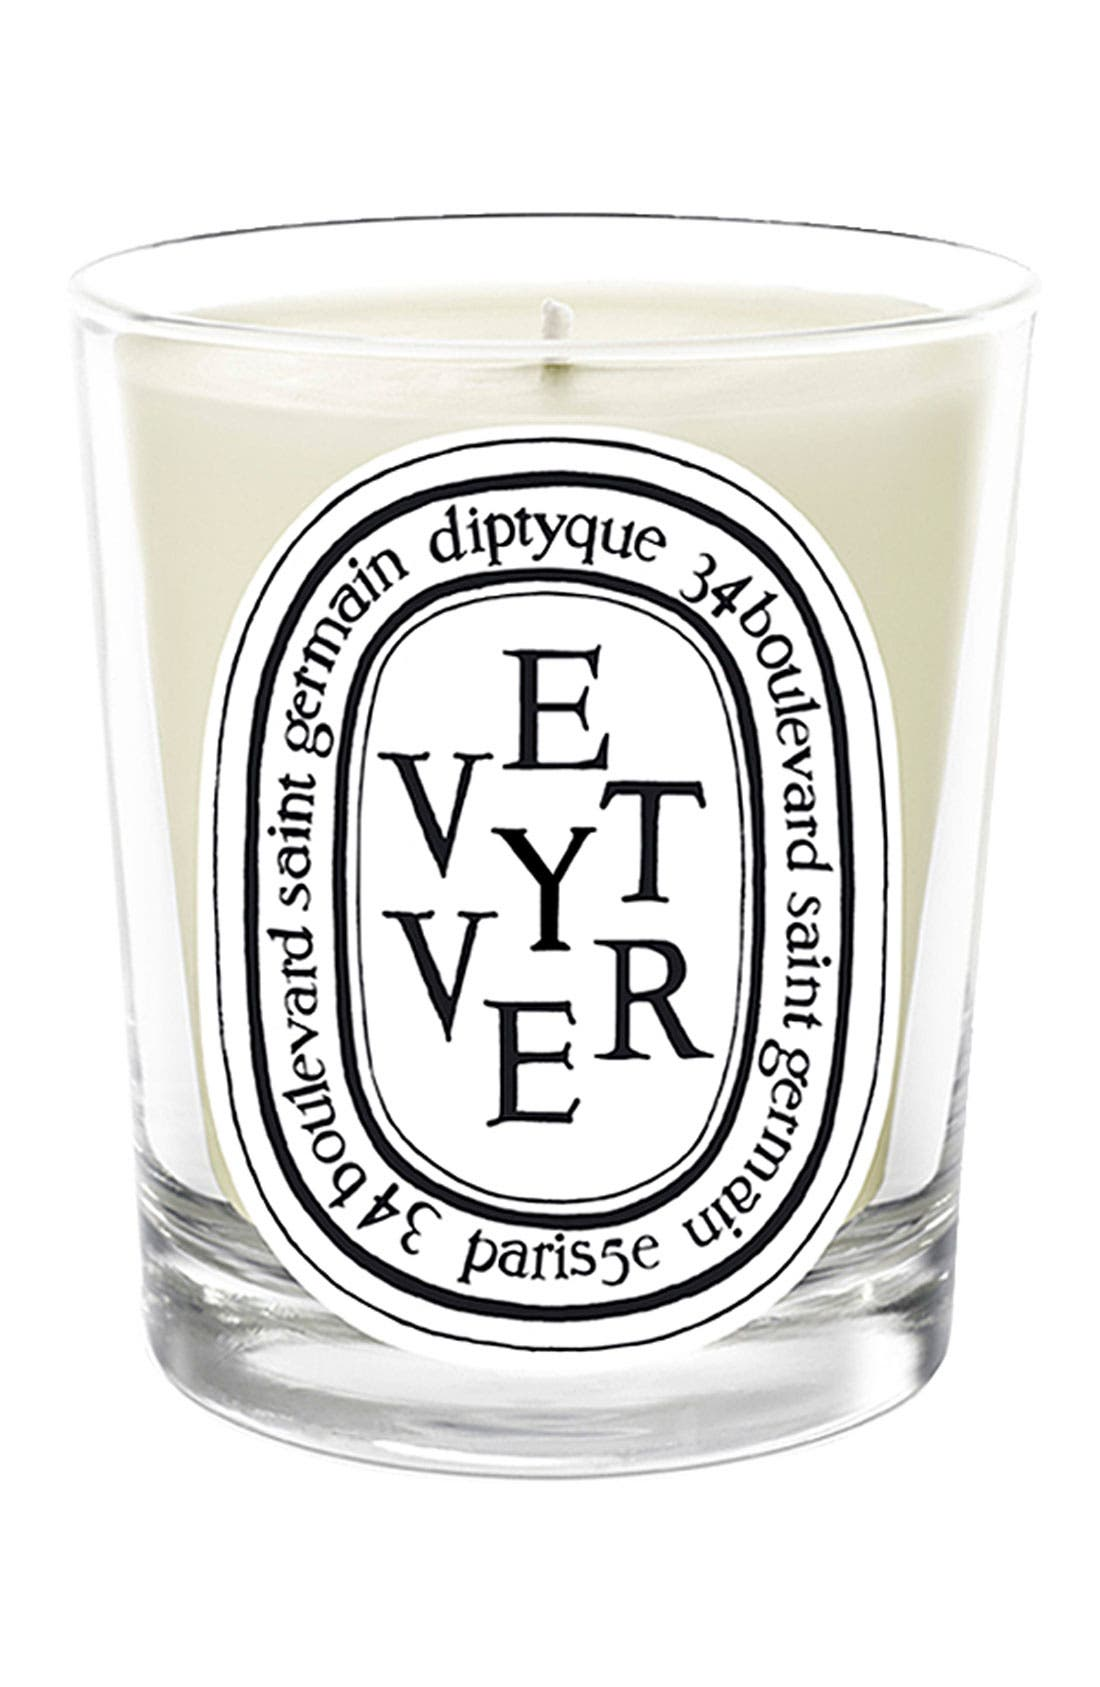 Main Image - diptyque 'Vetyver' Scented Candle